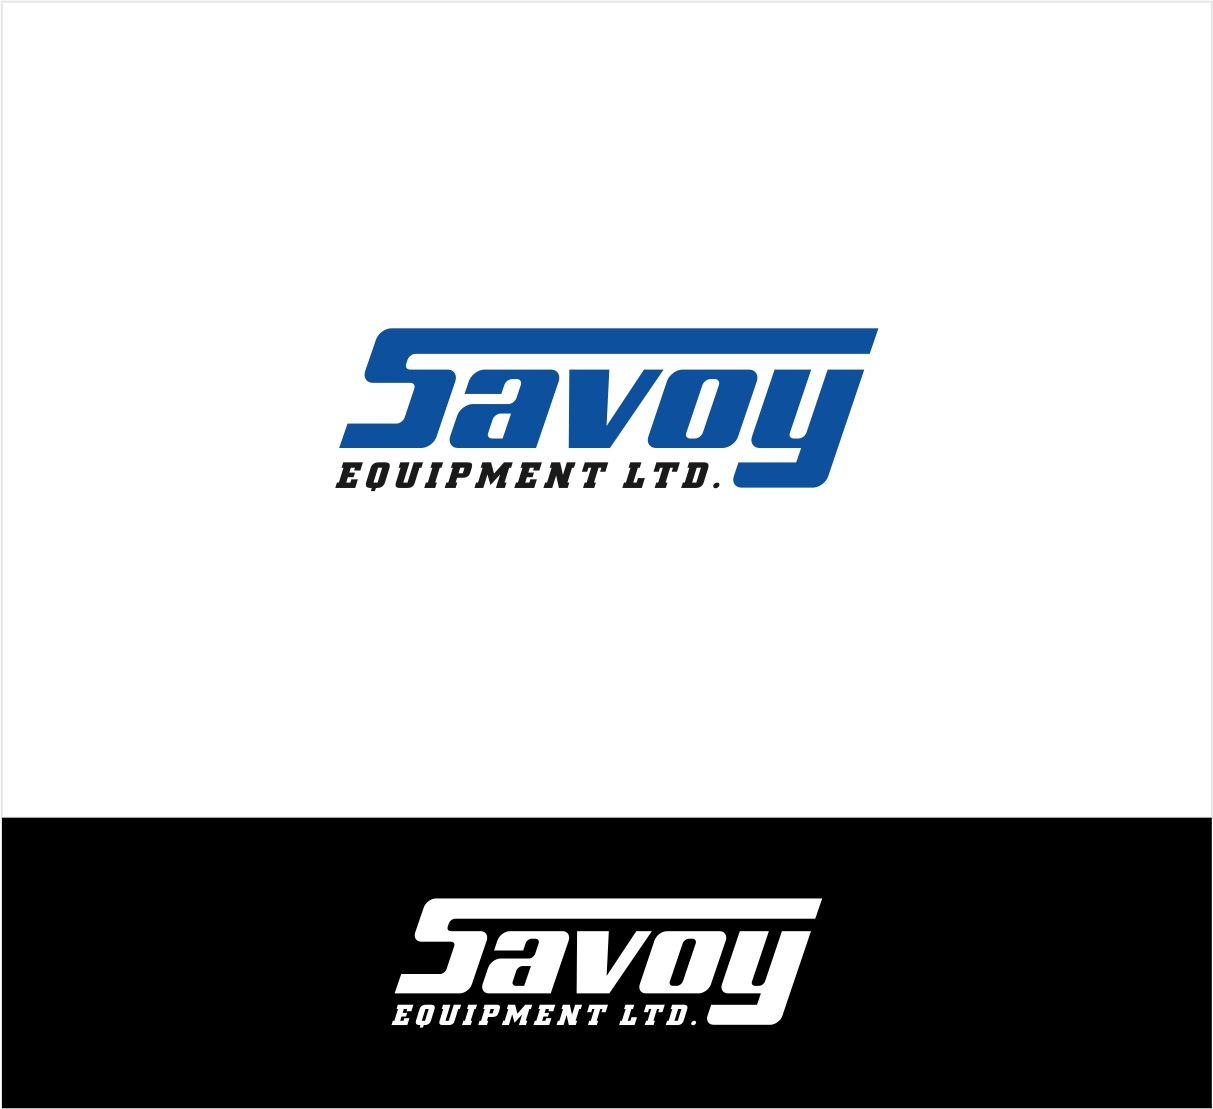 Logo Design by haidu - Entry No. 76 in the Logo Design Contest Inspiring Logo Design for Savoy Equipment Ltd..